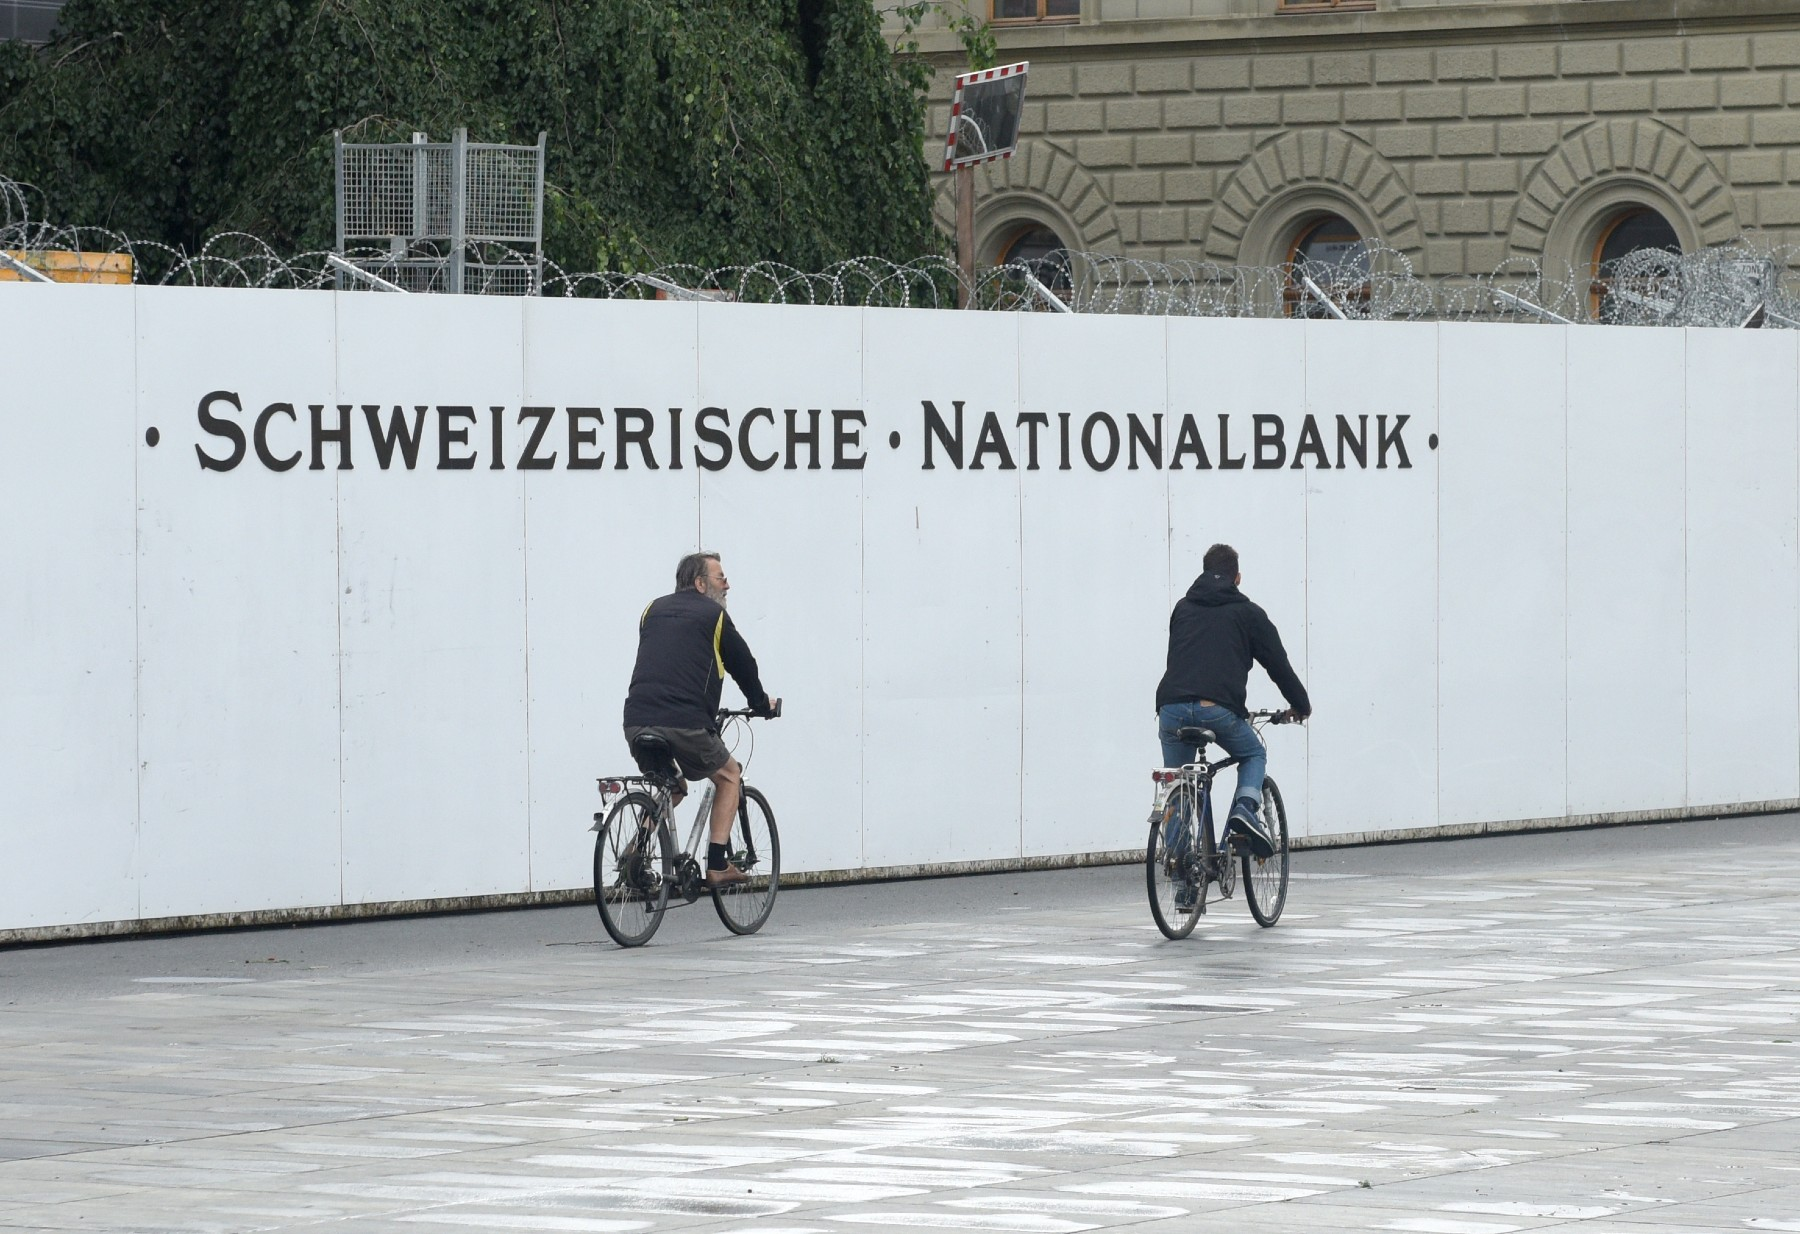 cyclists ride by the Swiss National bank sign, why is Switzerland so rich